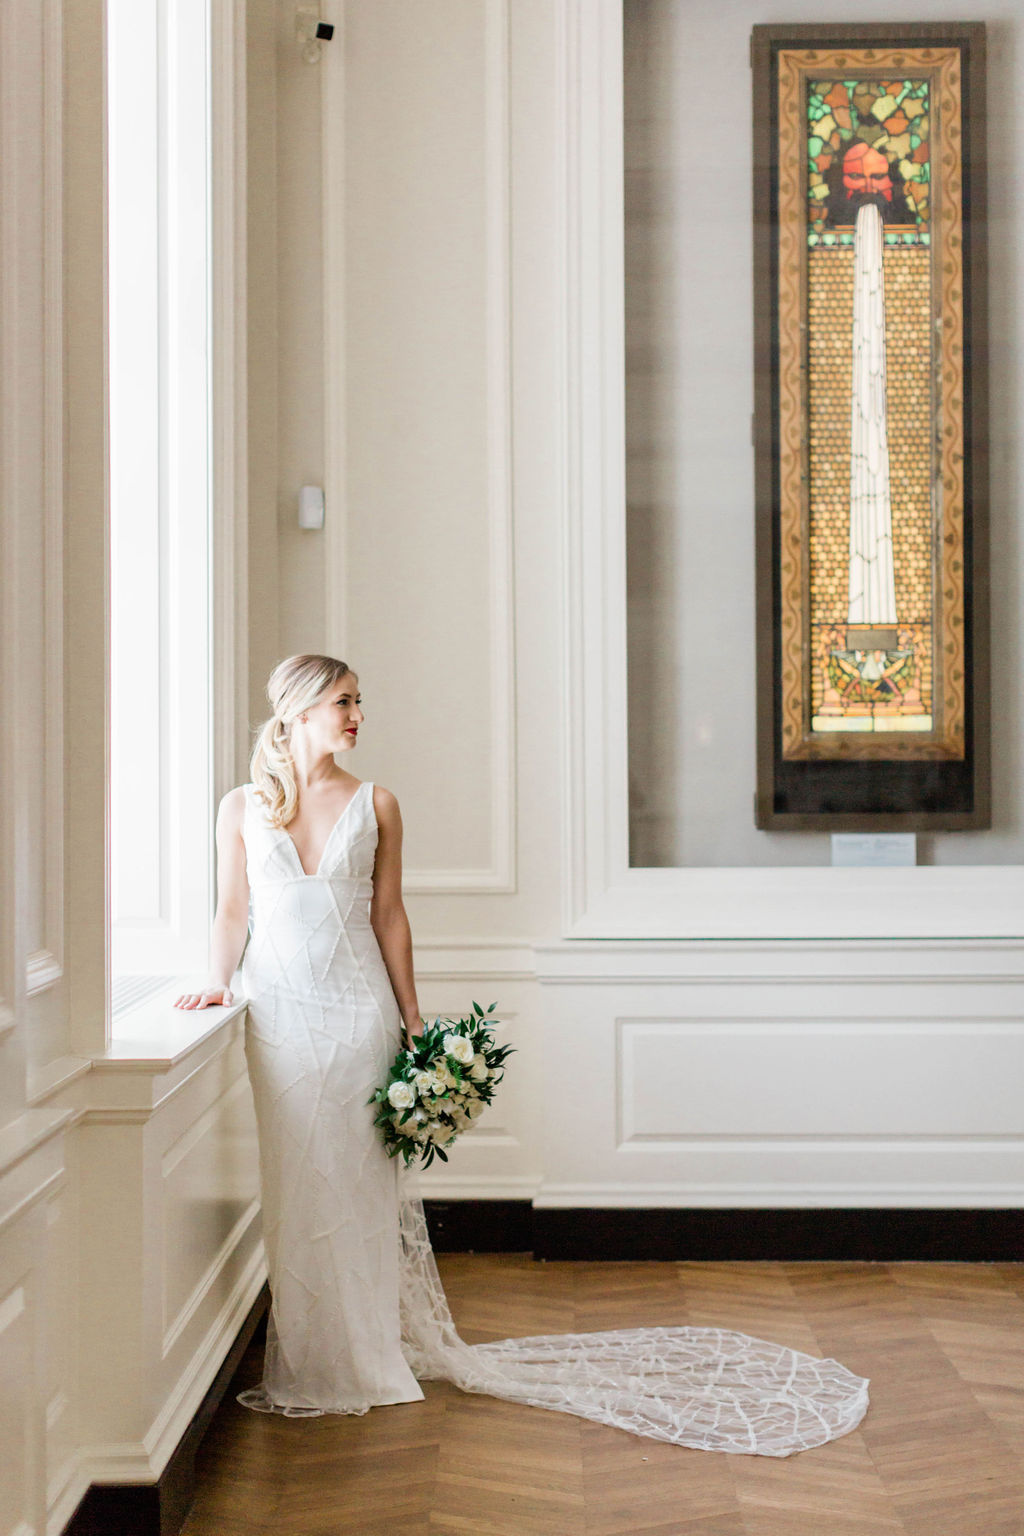 Loose Ponytail | Varca Bridal | Chicago History Museum | Black and White Wedding | Black Tie Wedding | Your Day by MK | Chicago Wedding Planner |